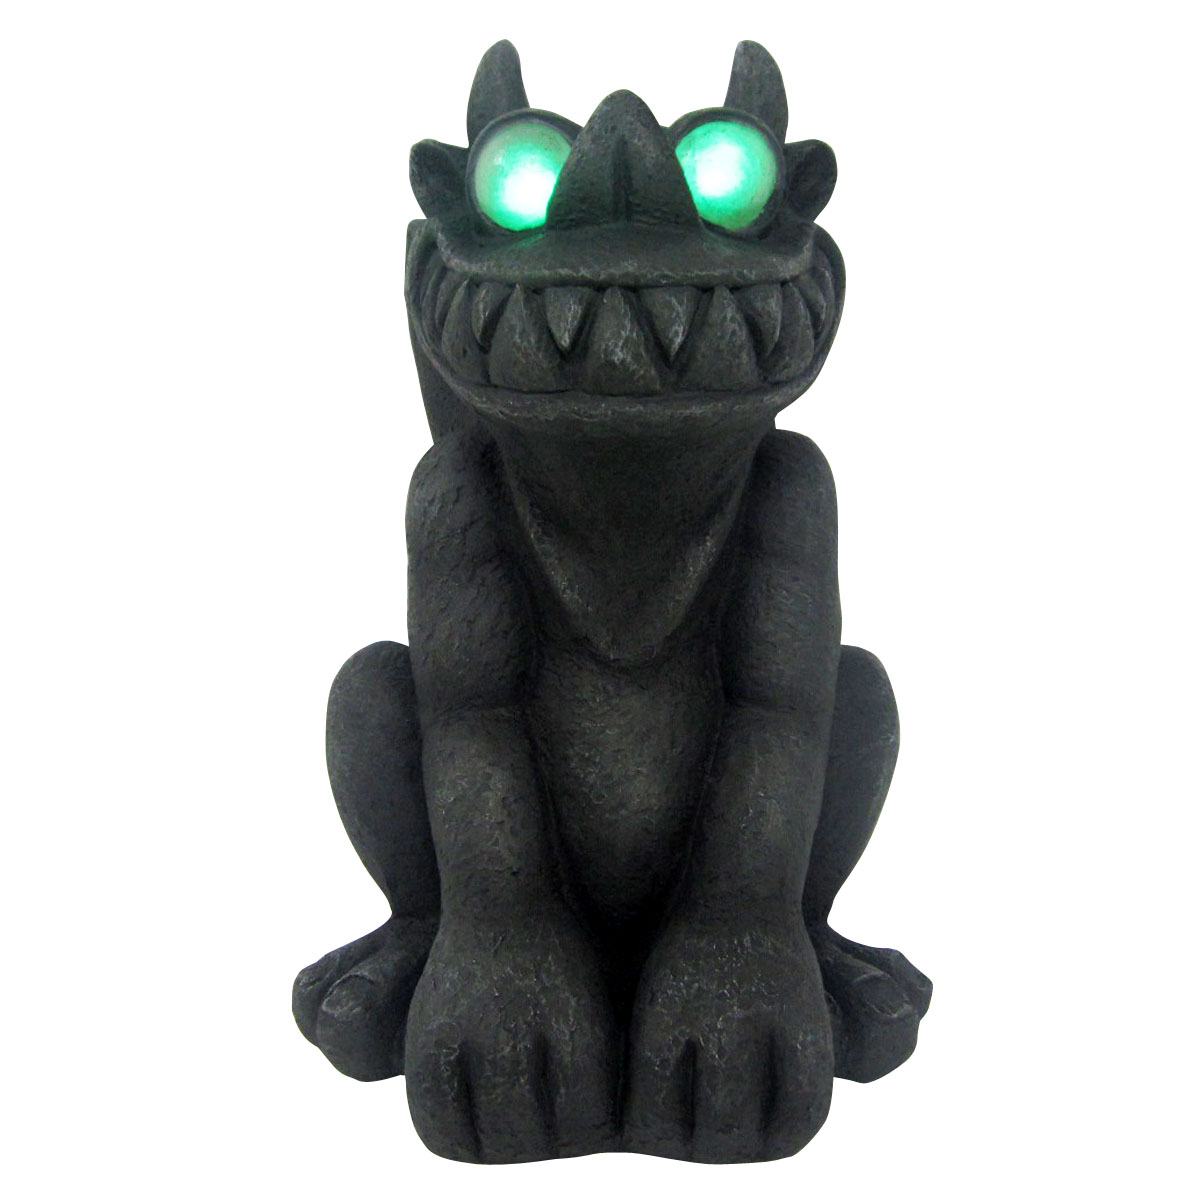 Design House 18.1 in. LED Gargoyle Light-Up Lawn Halloween Decoration - 319673